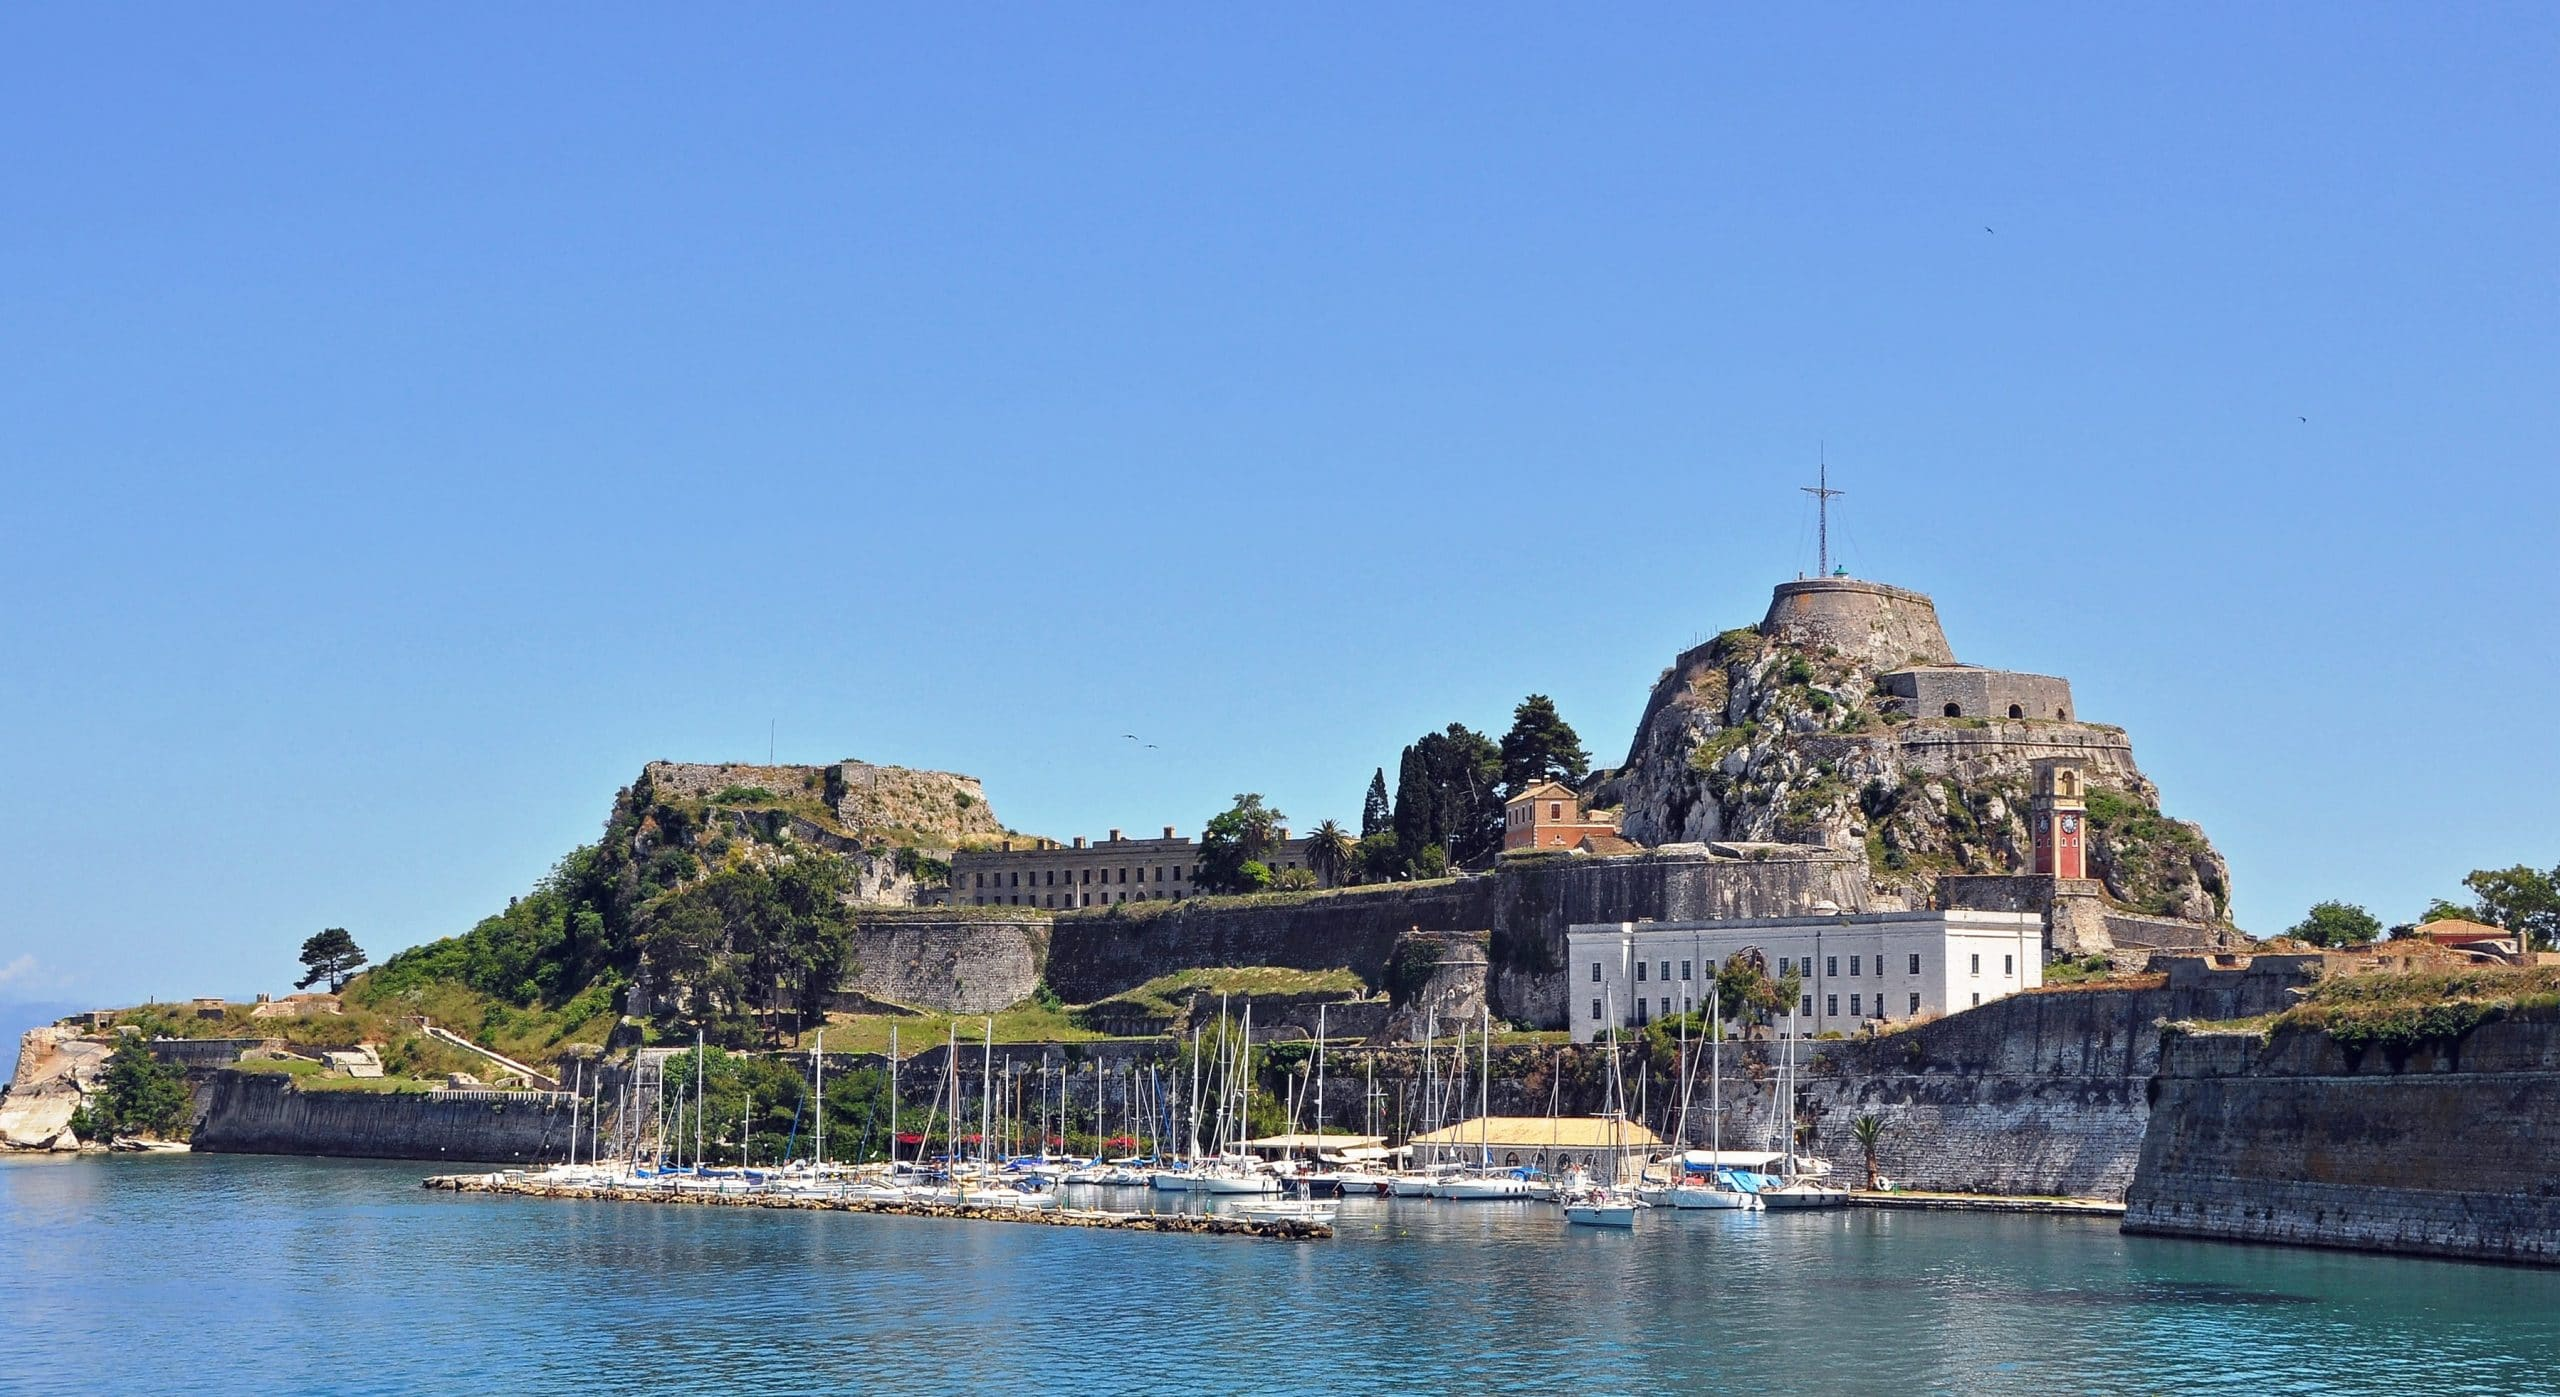 corfu single personals Brexit a coup de grace posted: 5/19/2017 9:50:10 am i was in corfu last year chatting to one of the guys my son was working with in gouvia marina, he was totally convinced and almost convincing in his argument that the whole greek problem was down to an american conspiracy to get it's hands on greece's oil reservesand.